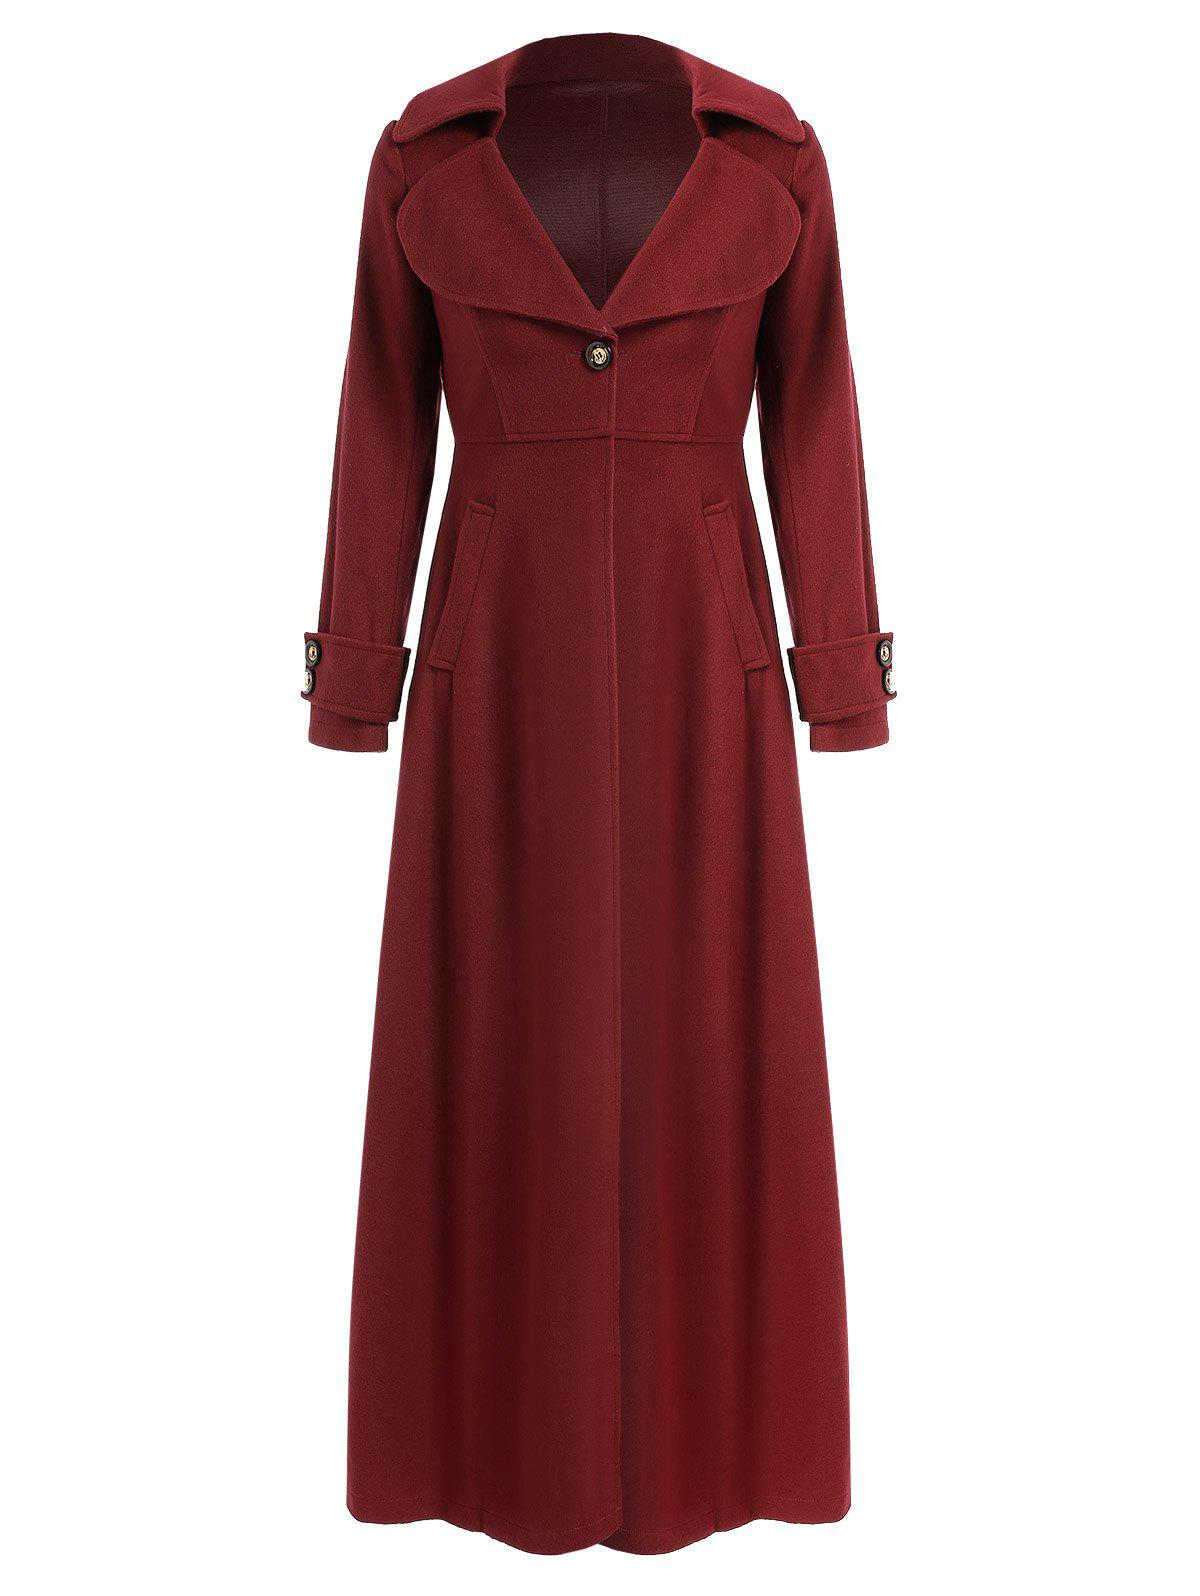 Unique Elegant Solid Color Turn-Down Collar Tunic Maxi Coat For Women